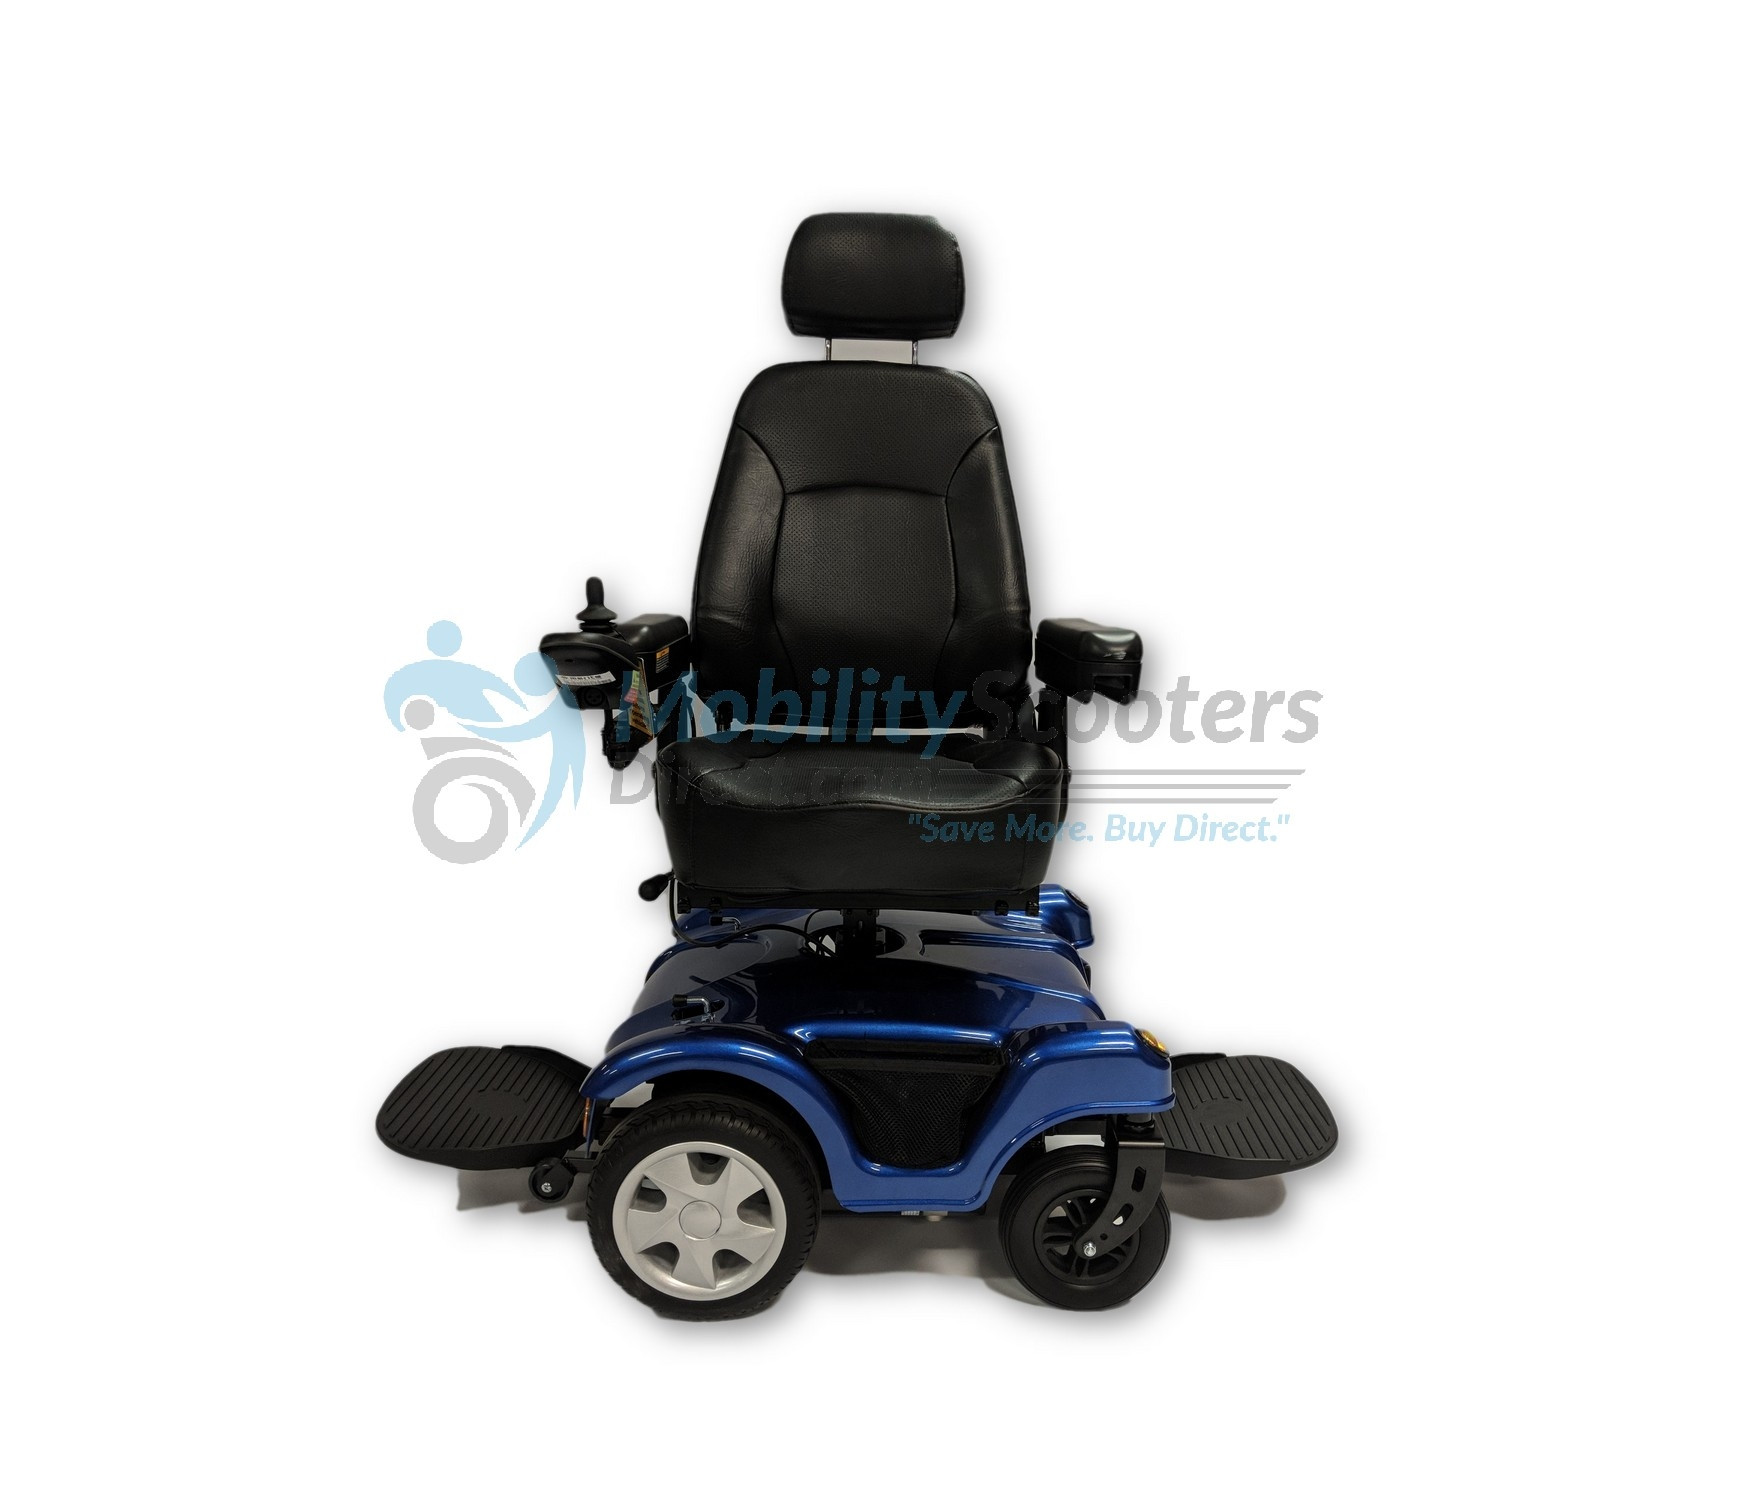 merits power chair task without arms health p312 wheelchair for sale lowest